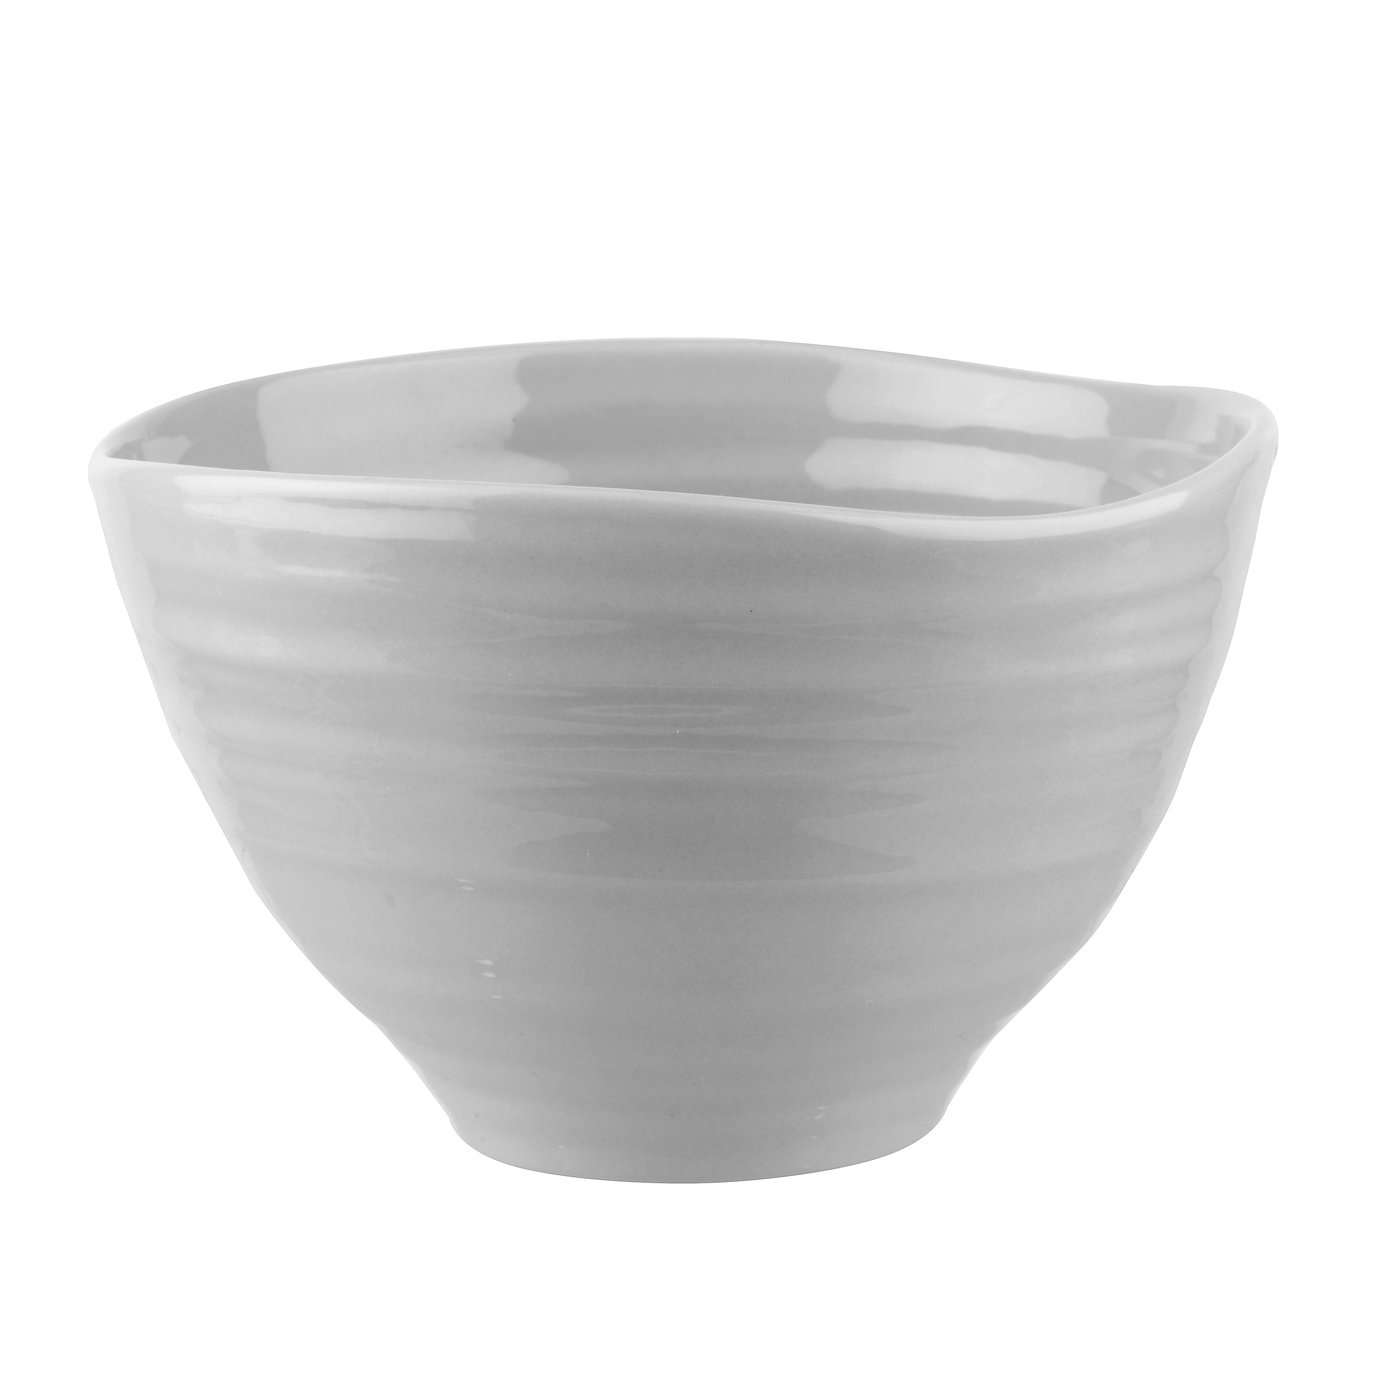 포트메리온 '소피 콘란' 스몰 볼 4개 세트 Portmeirion Sophie Conran Grey Set of 4 Small Footed Bowls